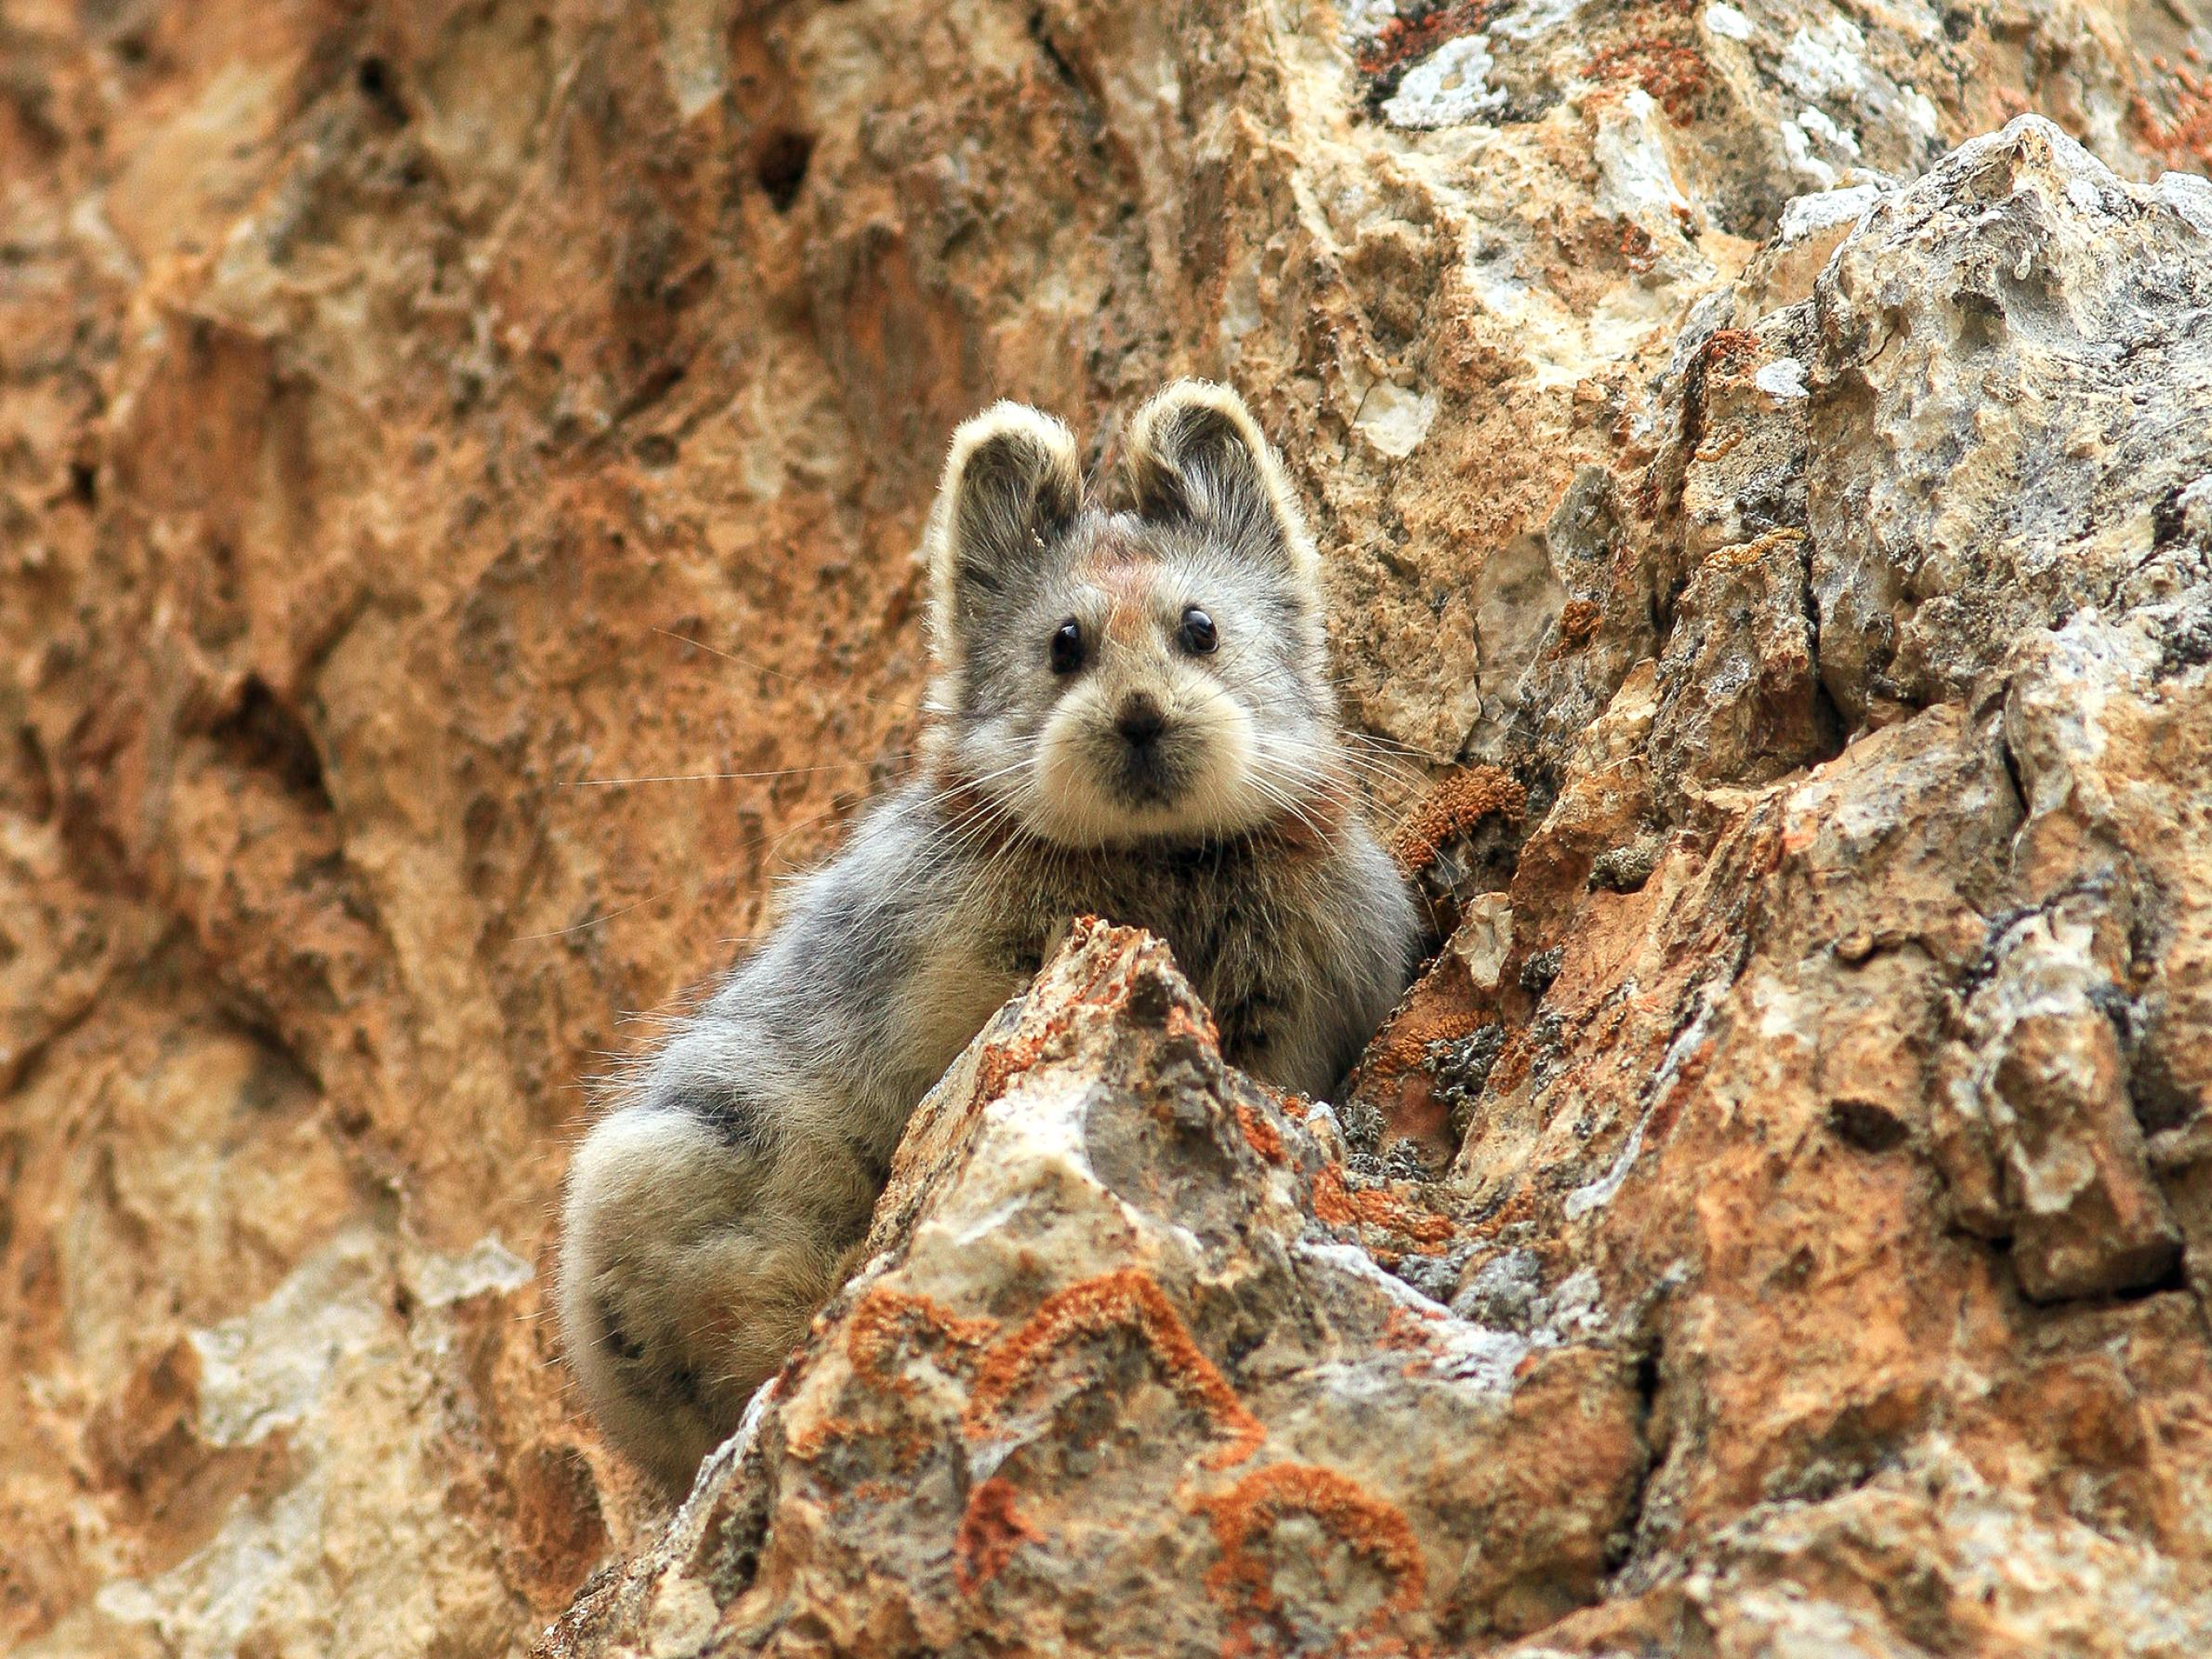 New favorite animal alert! Is there anything cuter than this teddy-bear-faced little guy?